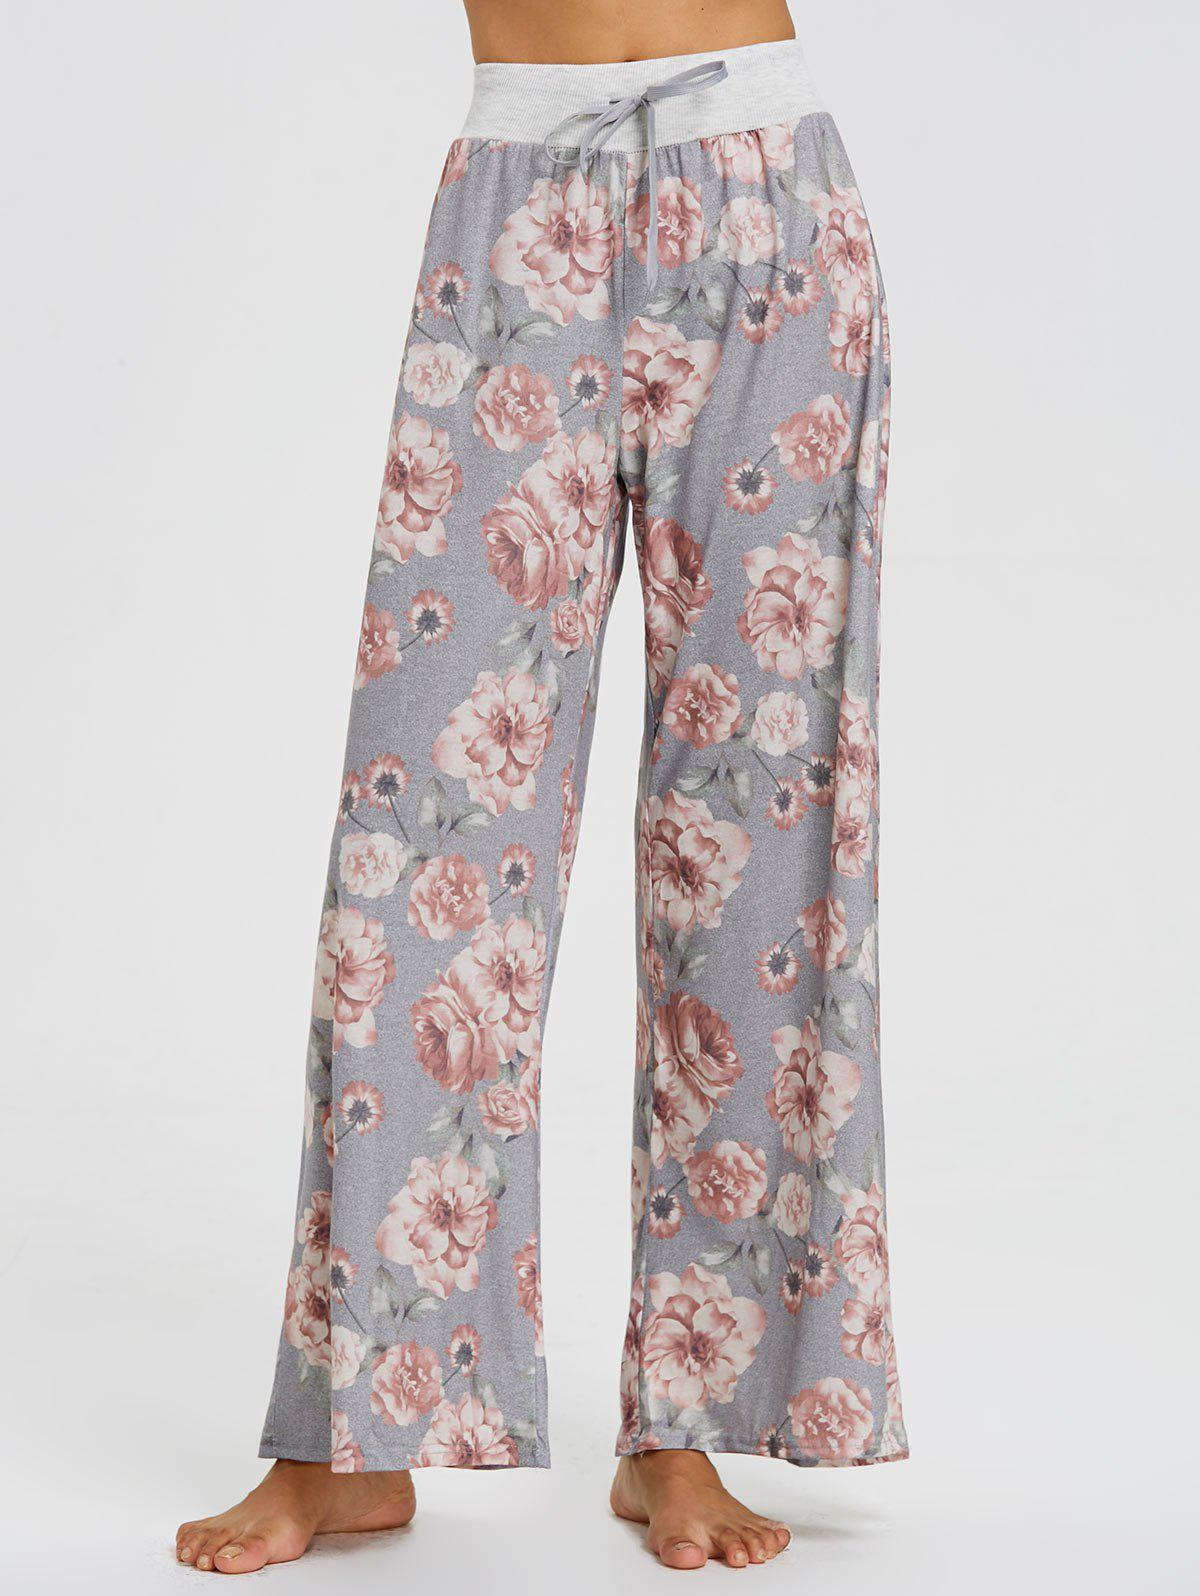 Chic Floral High Waisted Palazzo Pants